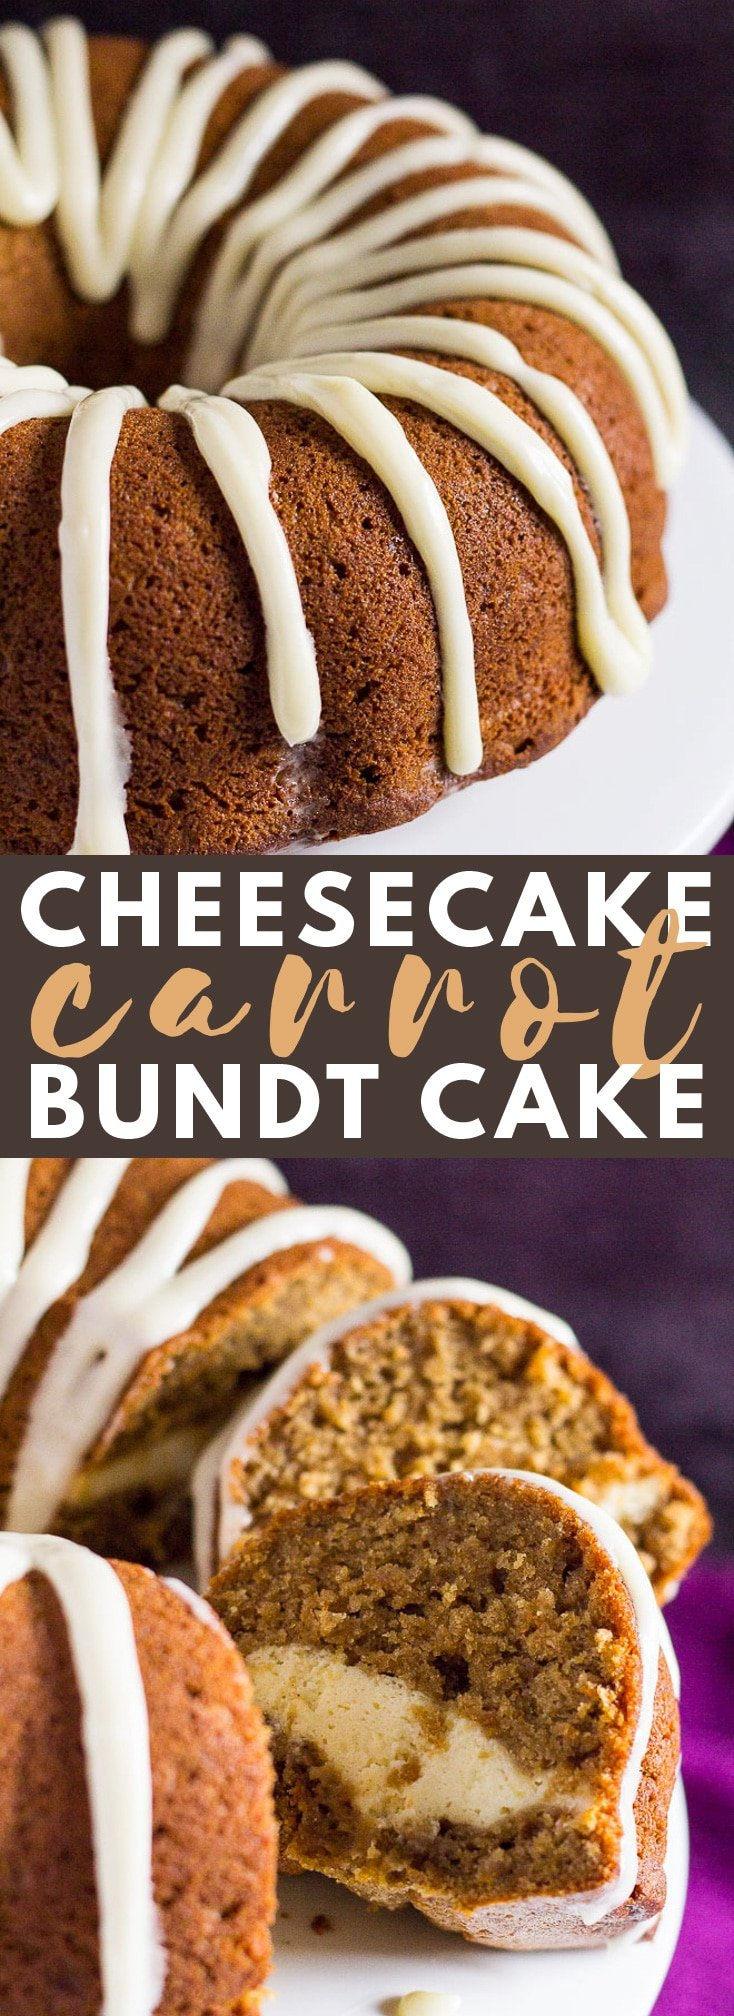 Cheesecake Swirl Carrot Bundt Cake